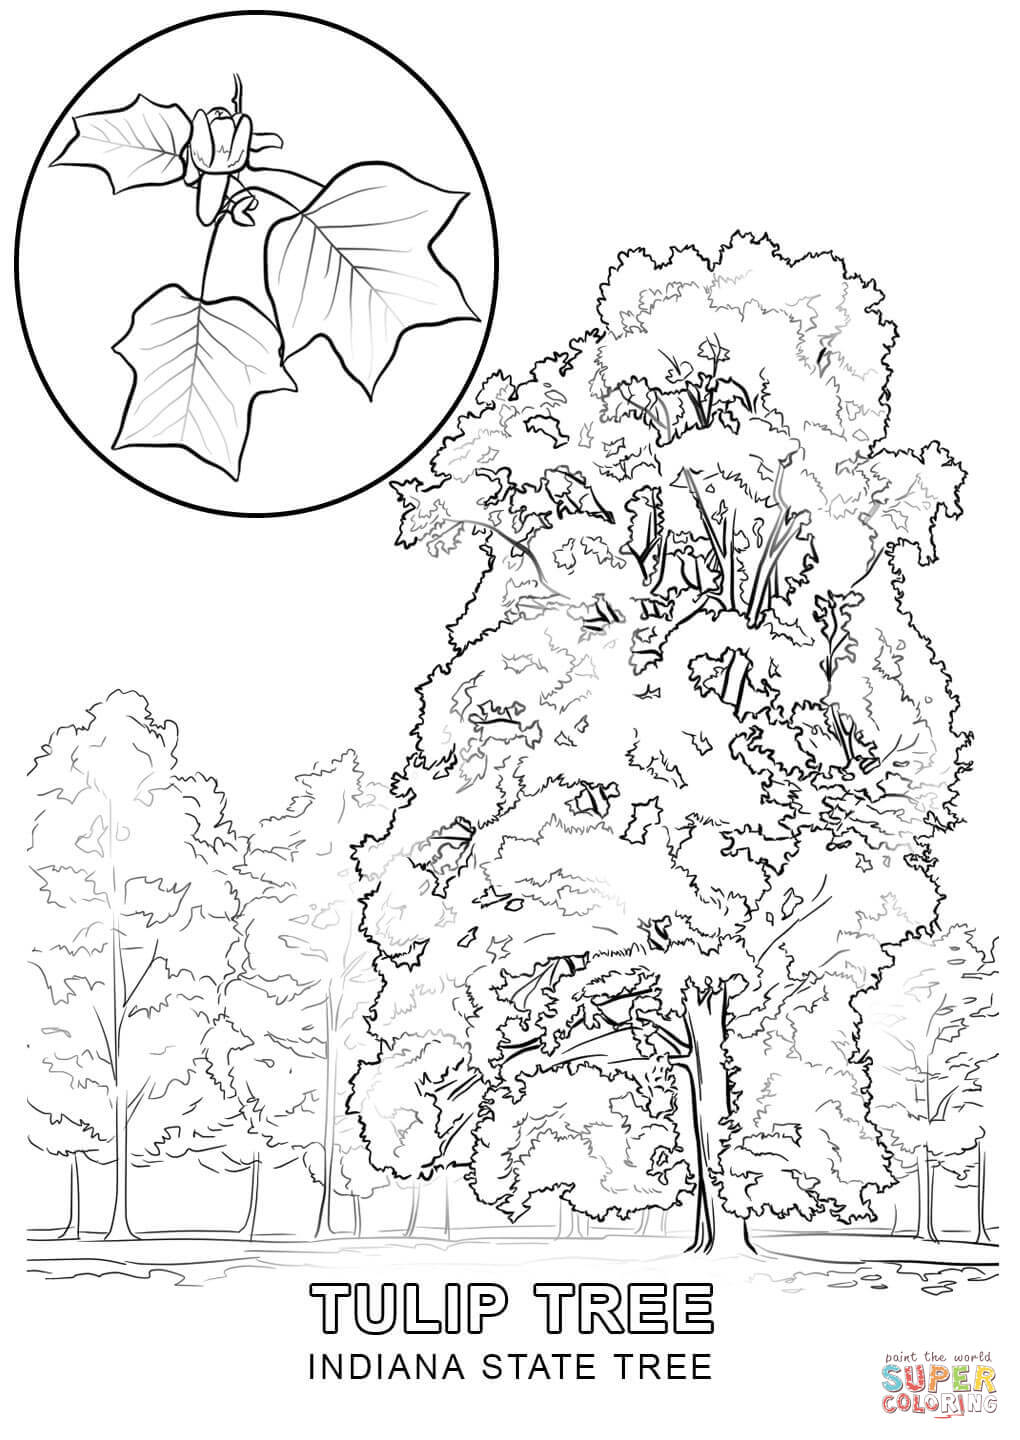 state tree coloring pages south dakota state tree coloring page free printable state tree pages coloring